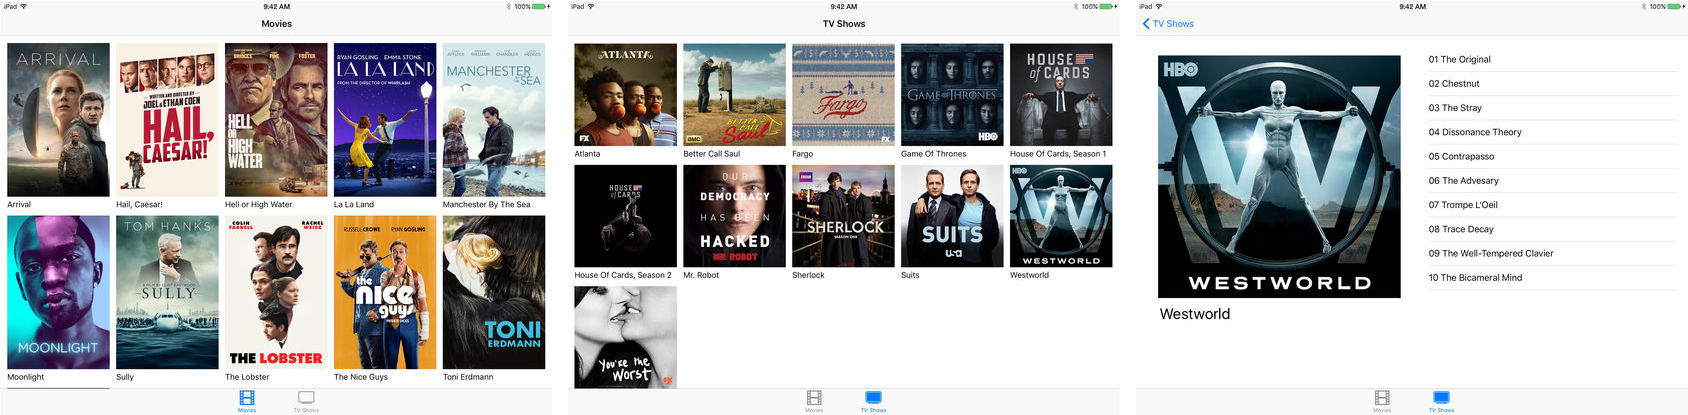 Apple's new TV app doesn't like ripped DVDs, here are some